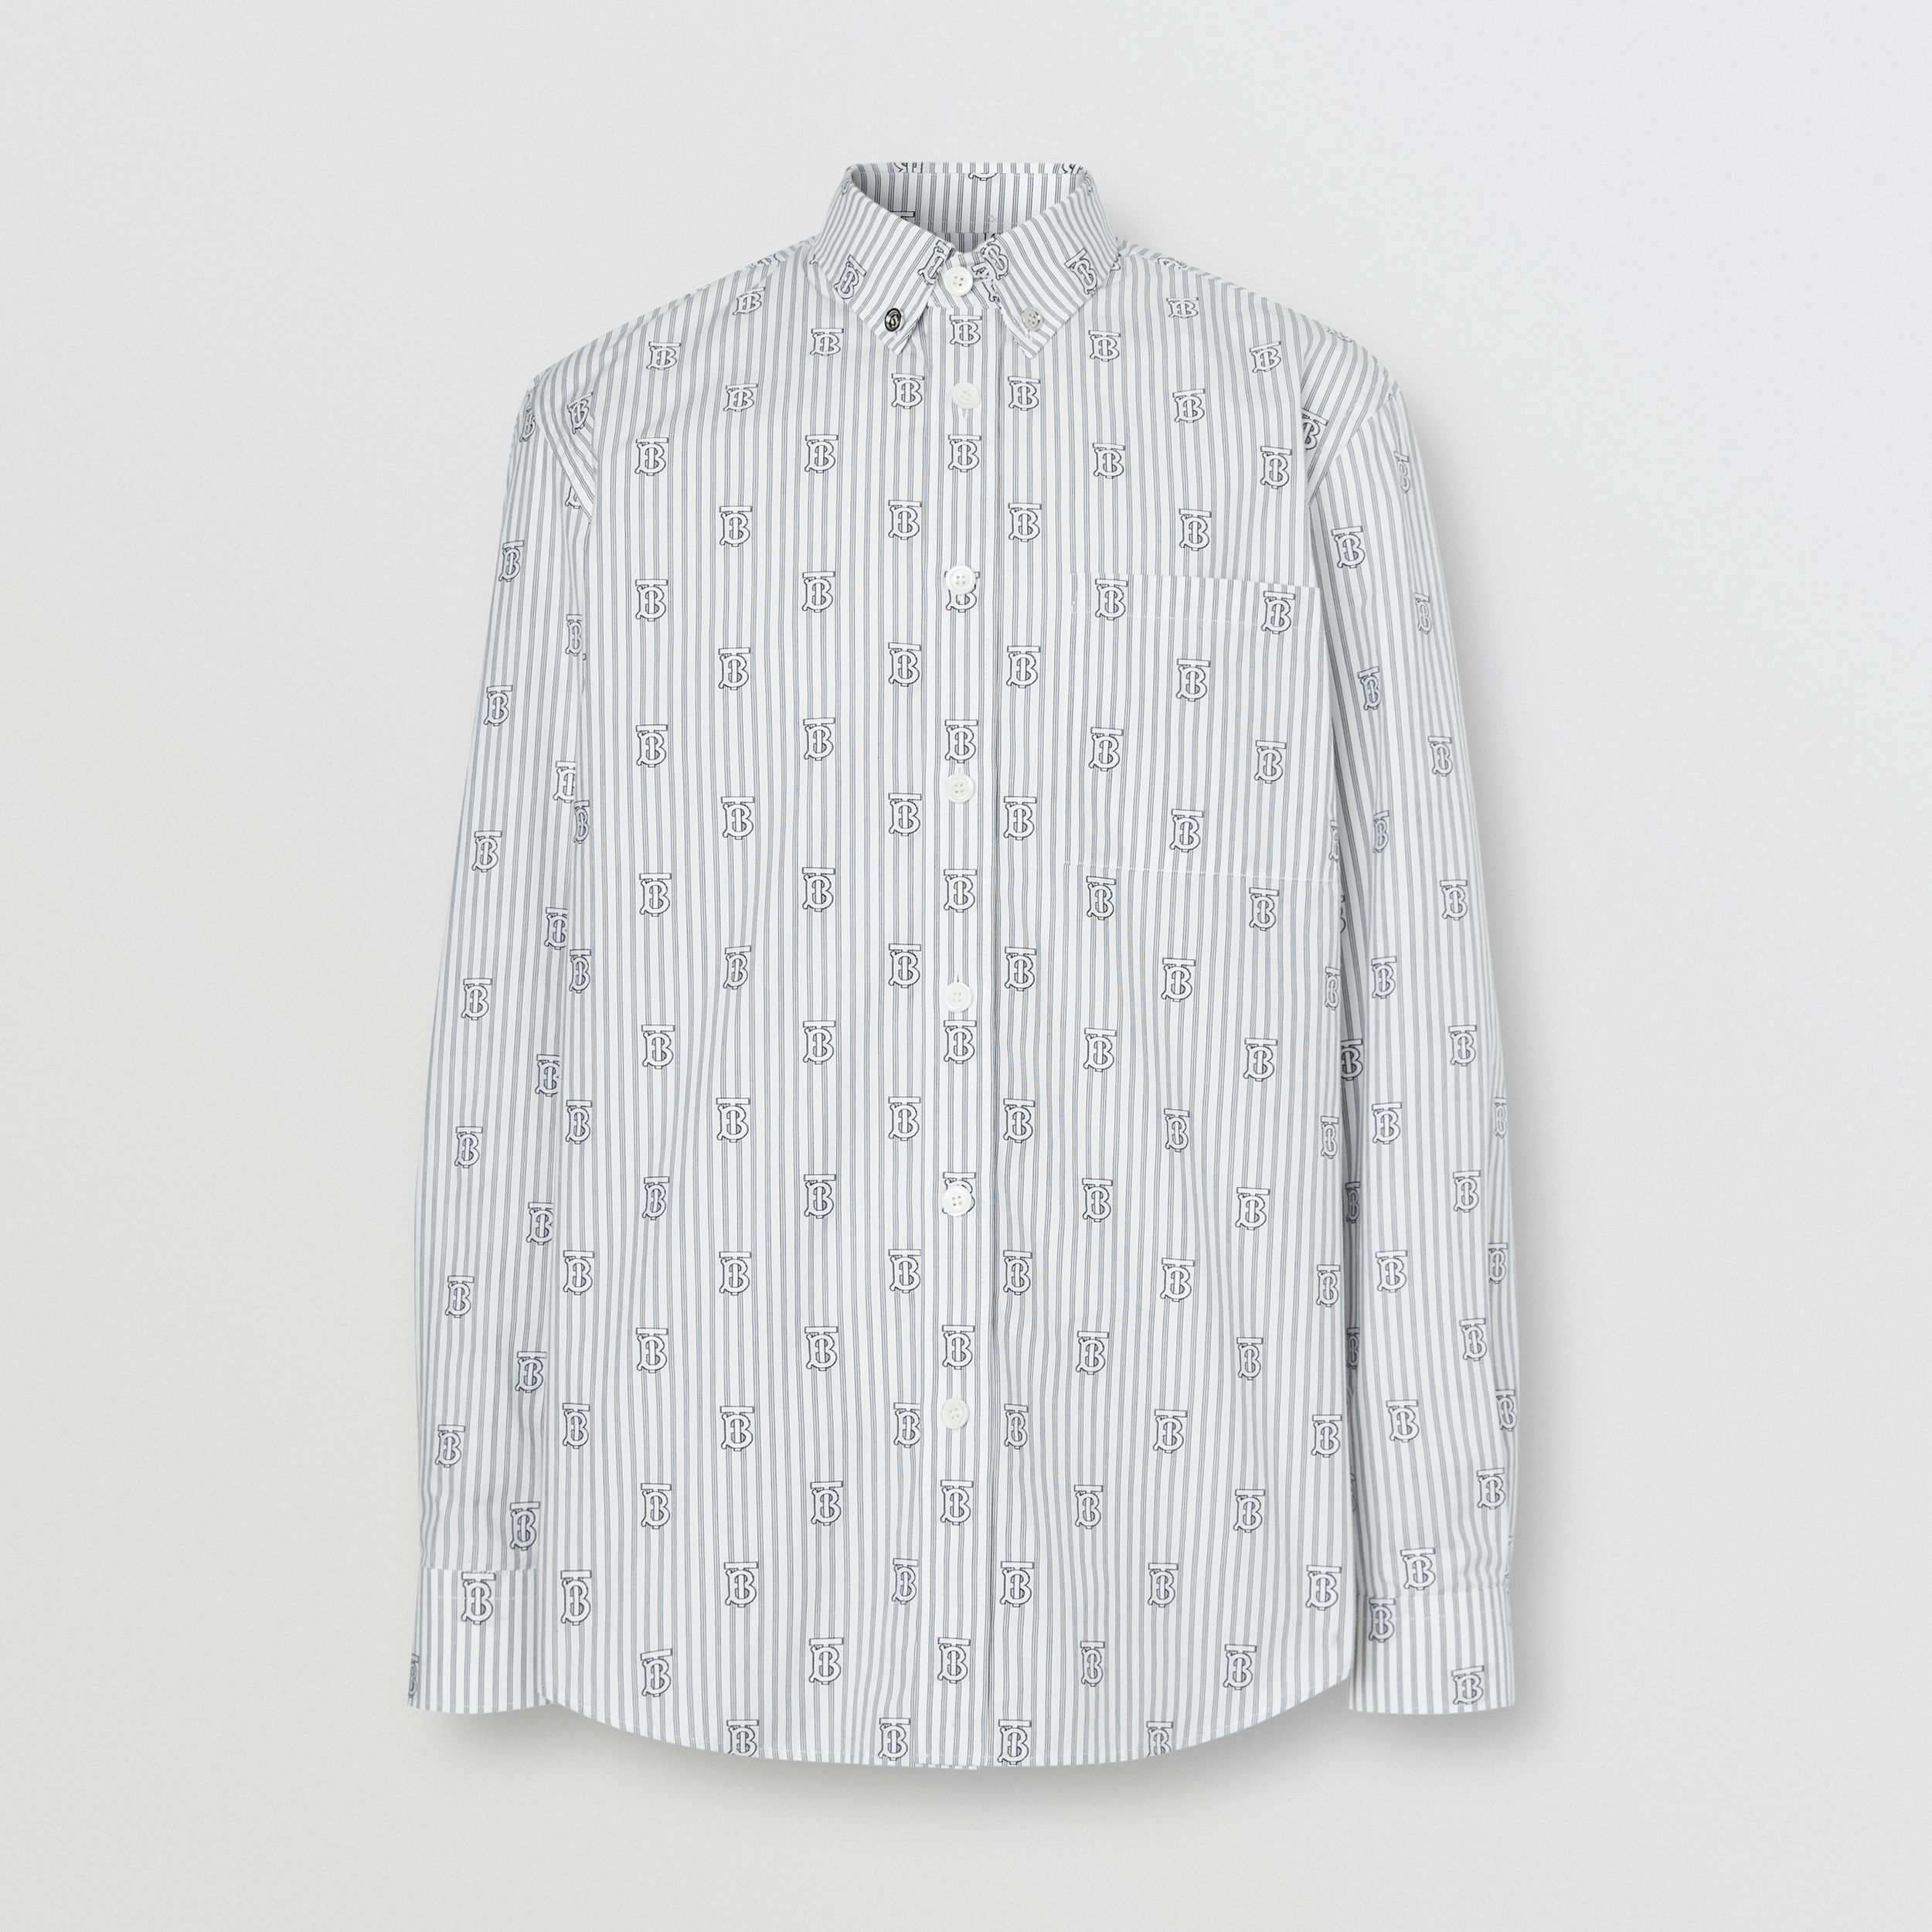 Slim Fit Monogram Motif Pinstriped Cotton Shirt in White - Men | Burberry Australia - 4